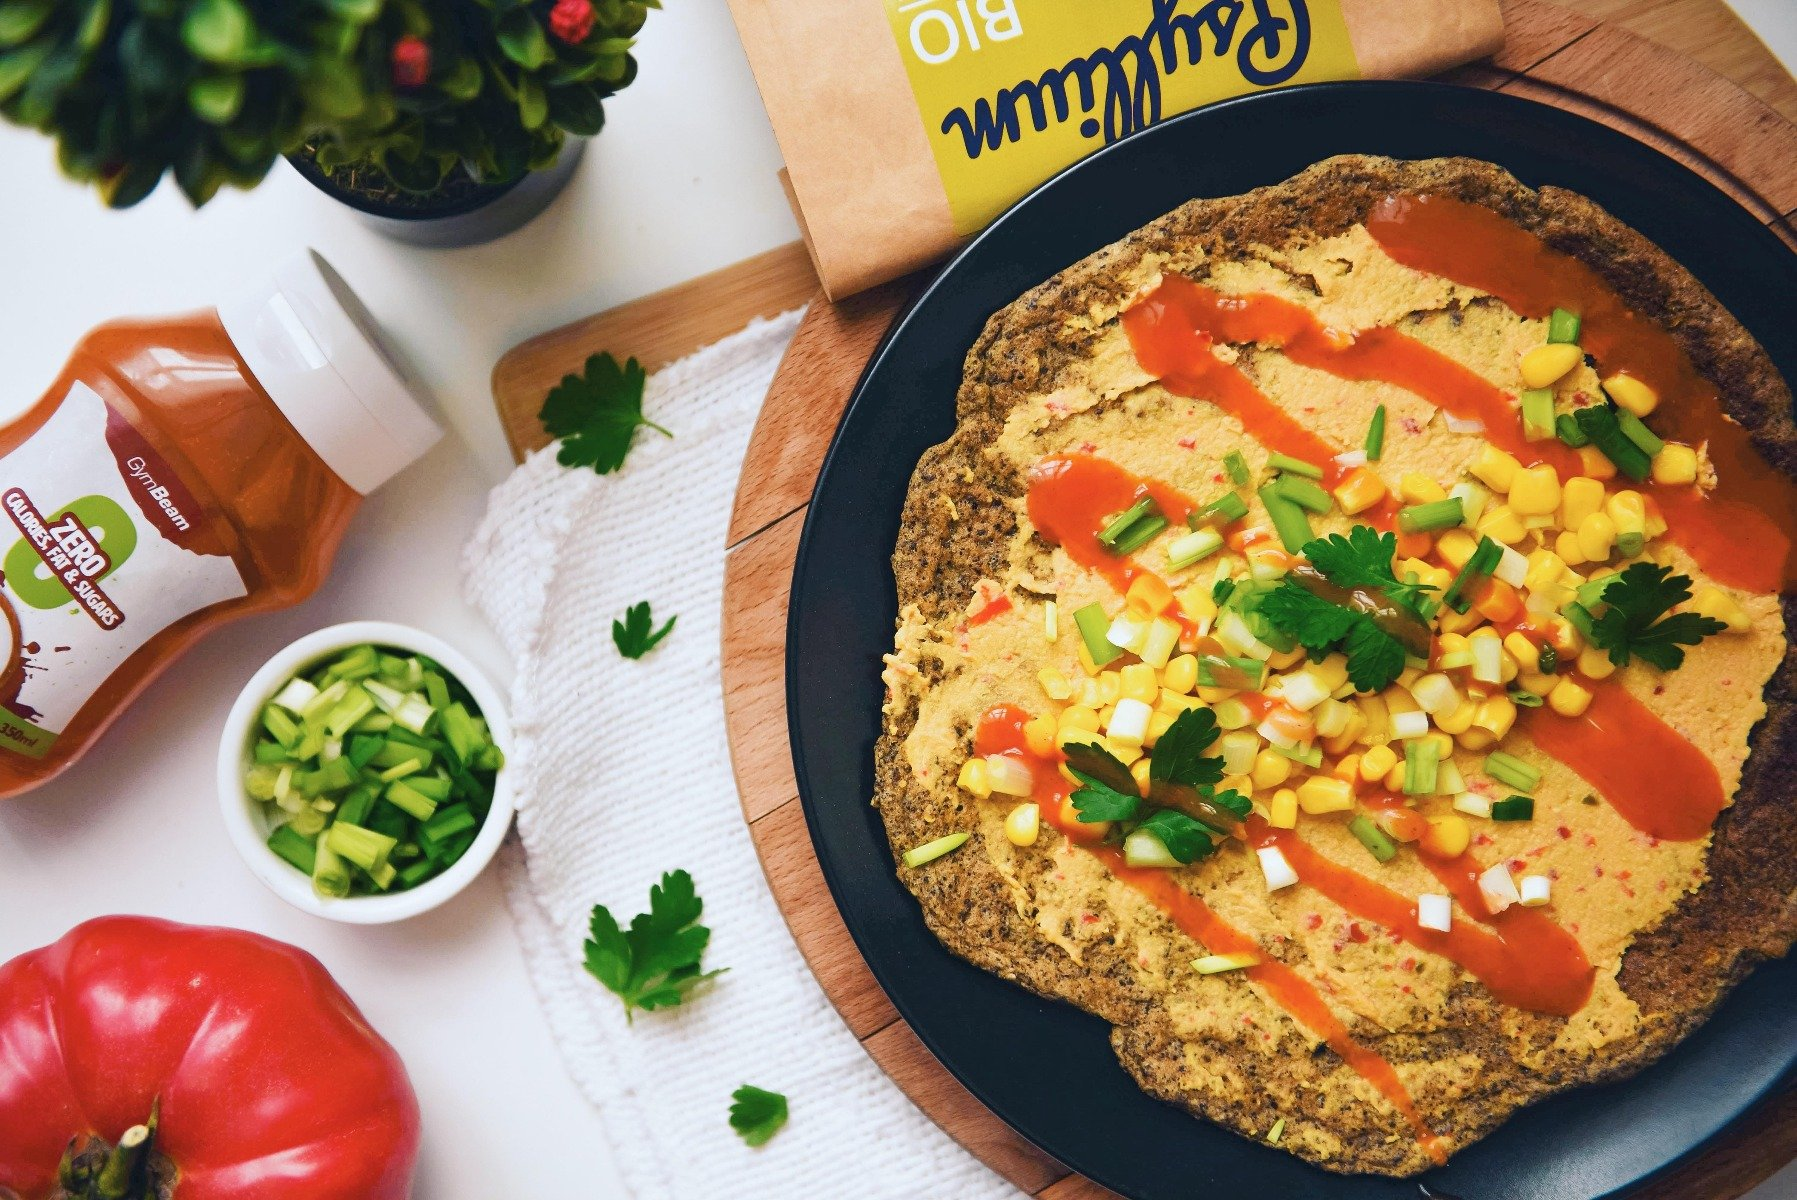 Fitness recipe: Vegan tortilla with high protein content